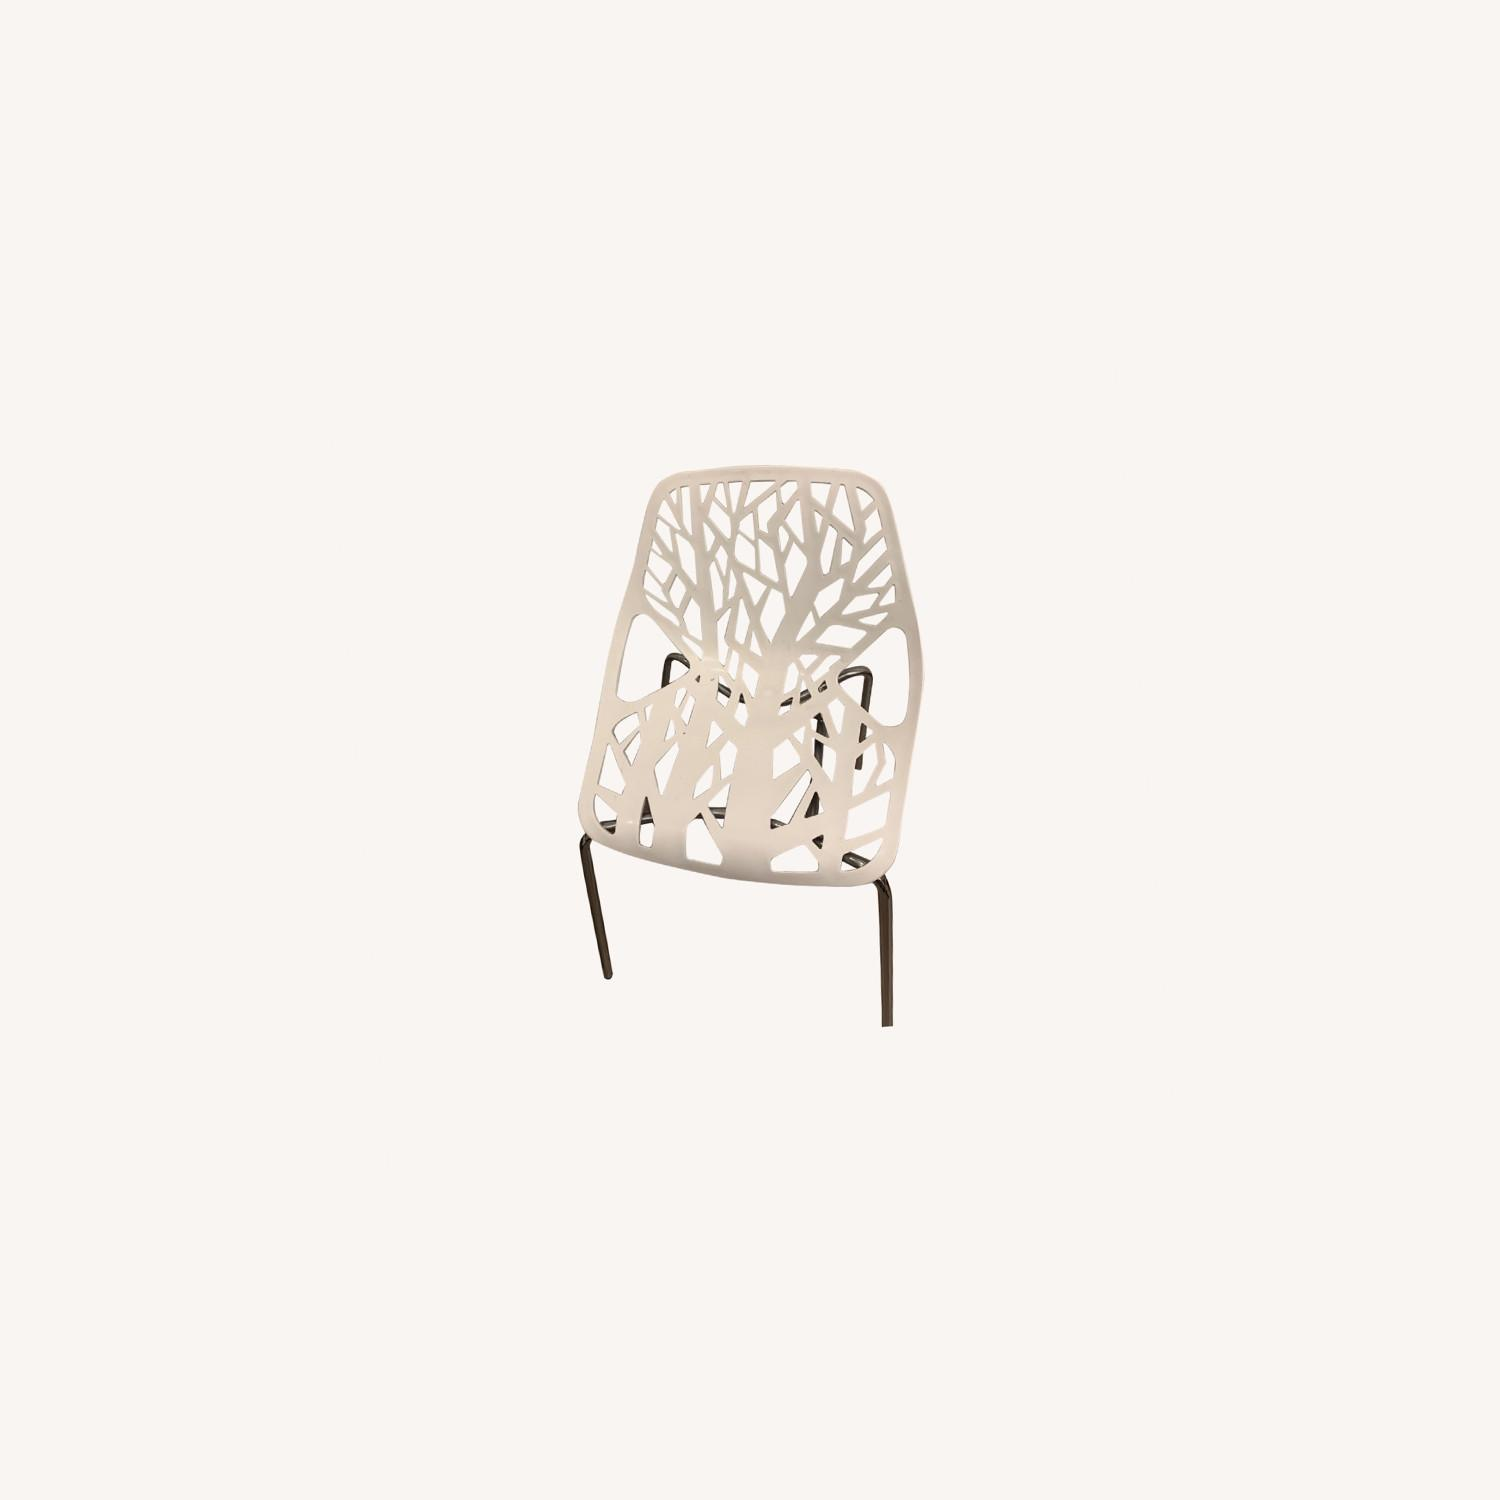 EdgeStar Dining Chairs White with Chrome Legs - image-0